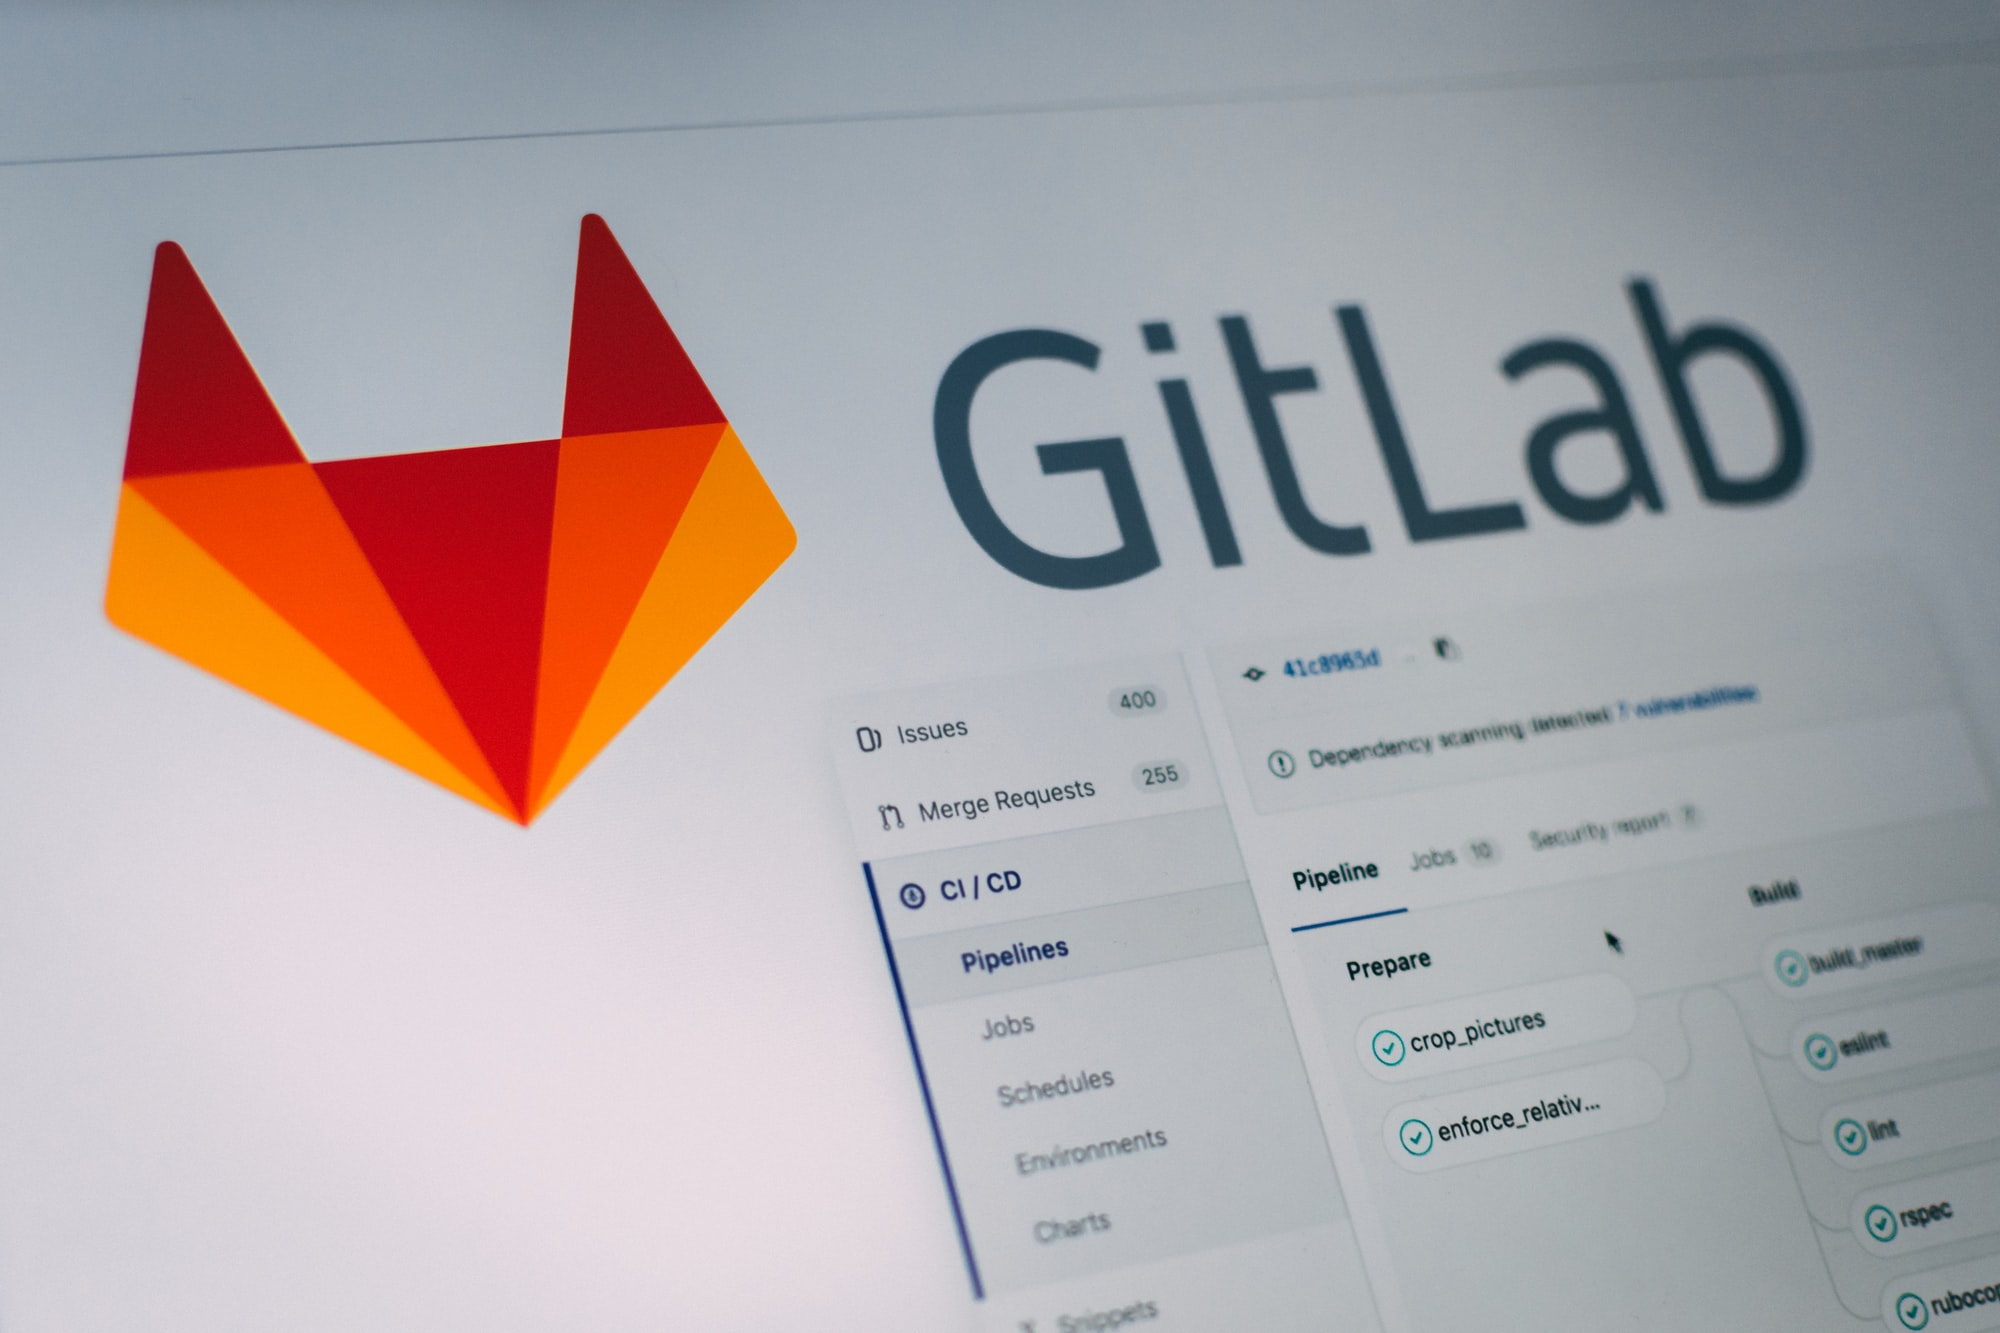 Setup Gitlab on FreeNAS VM